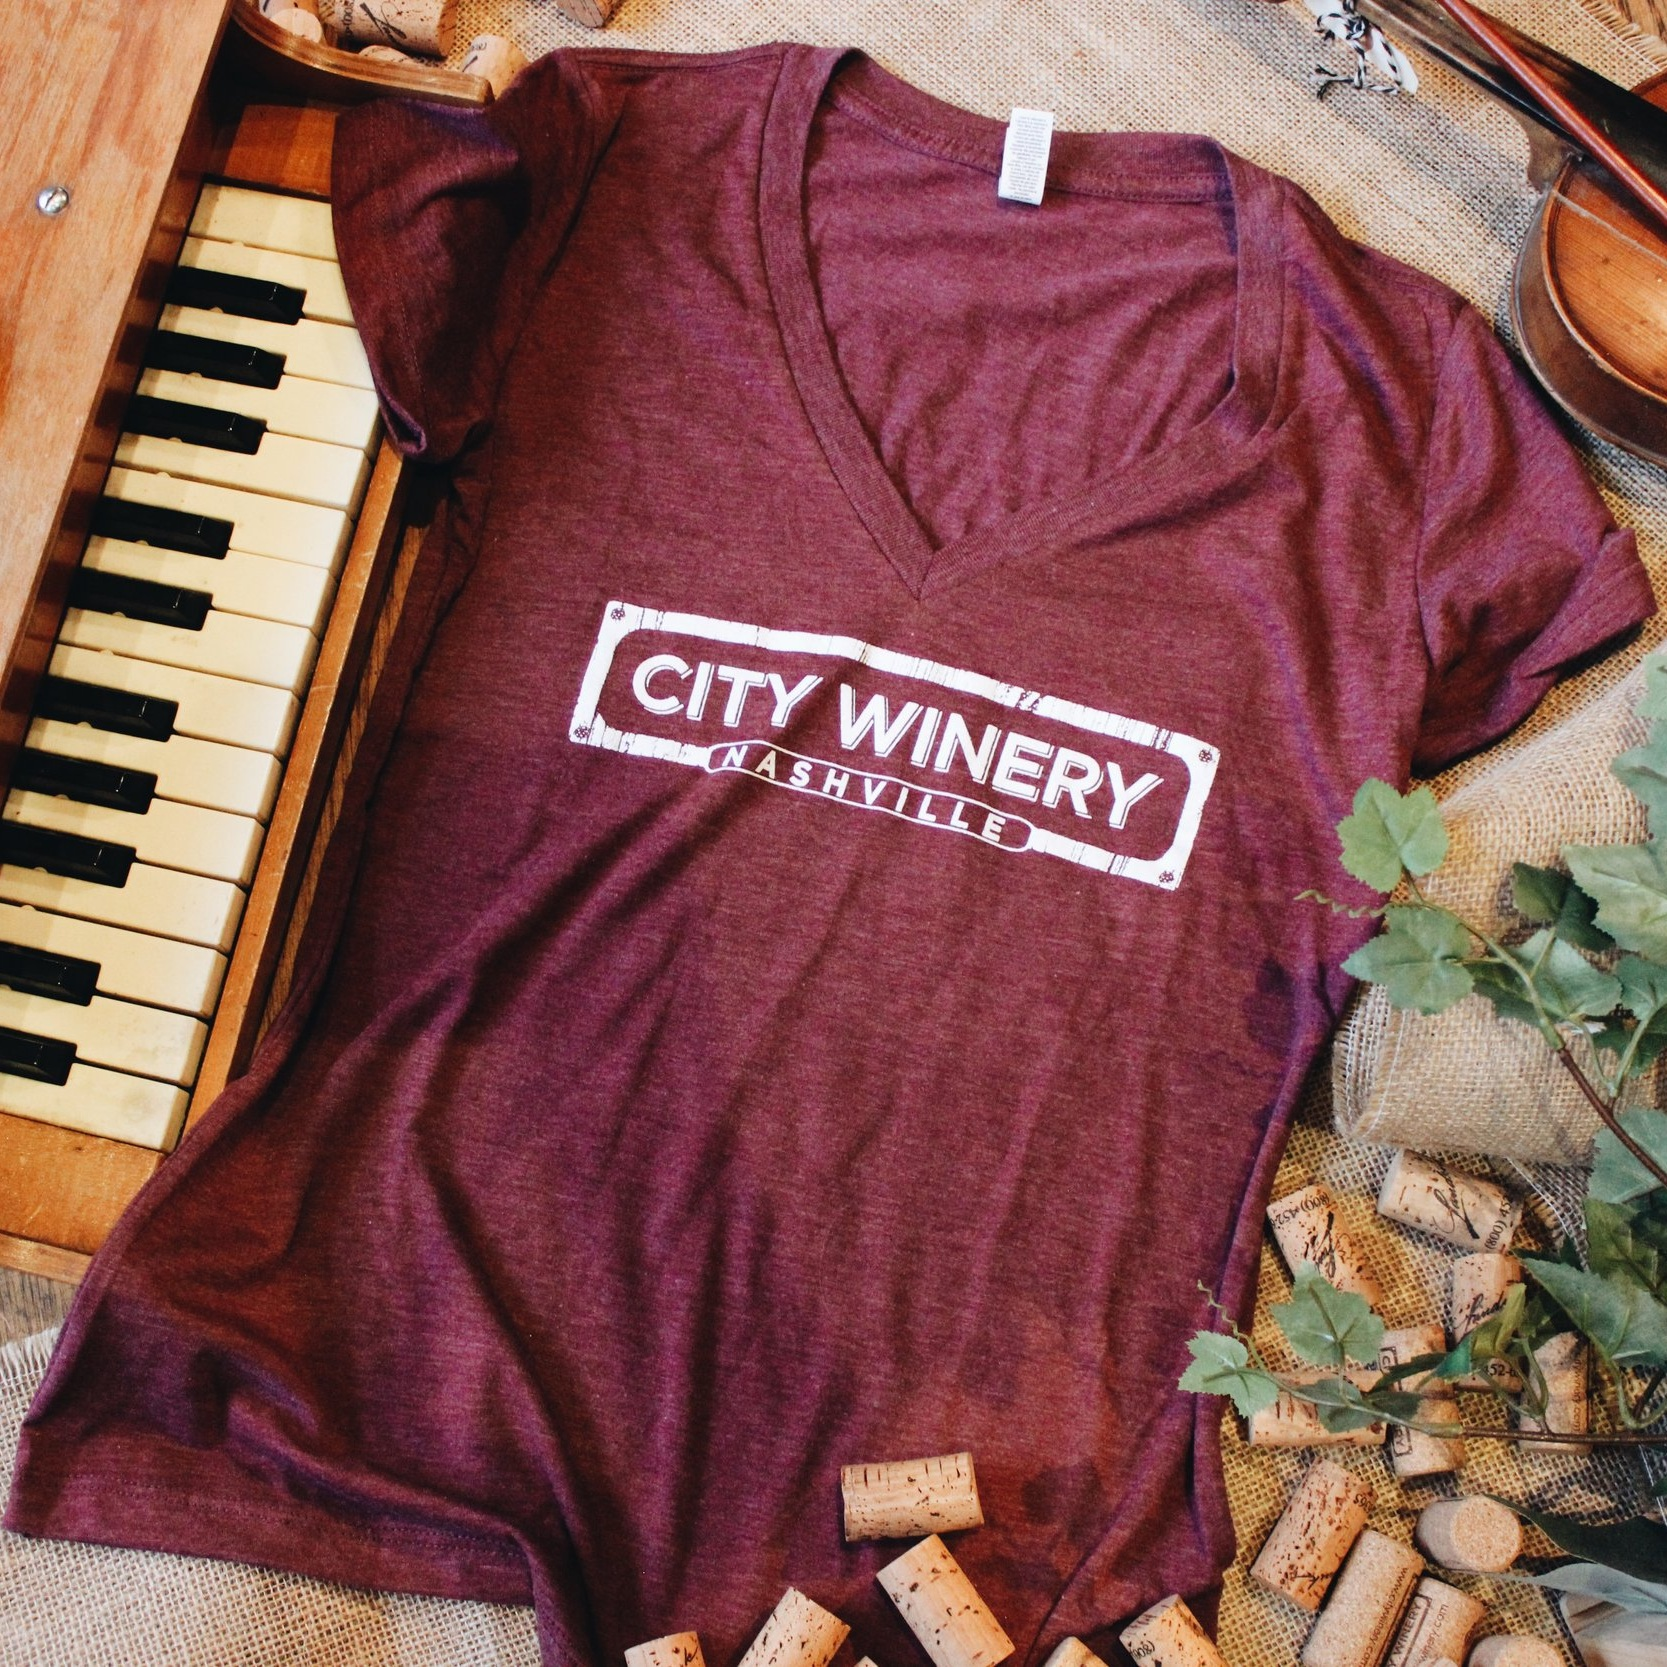 NASHVILLE LOGO RED WOMAN'S T-SHIRT - Rep your favorite location of the City Winery brand with this comfortable, relaxed cotton t-shirt with a v-neck, heather red color and short sleeves. Fits true to women's sizing.